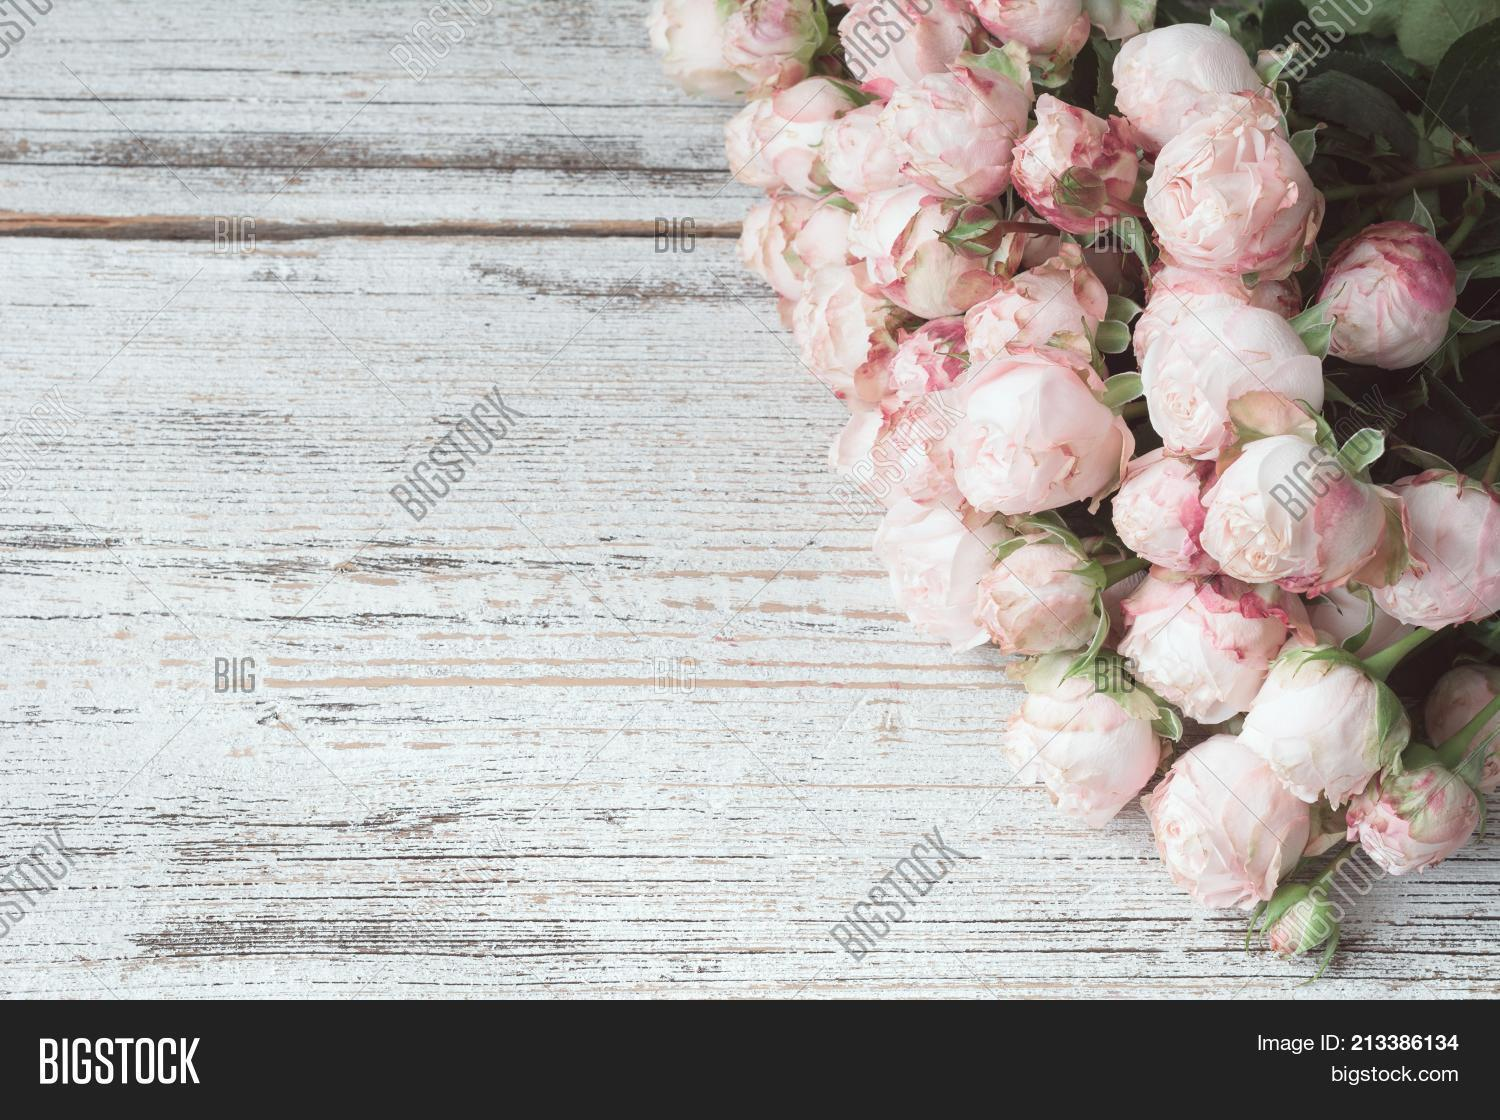 pink roses on vintage image photo free trial bigstock pink roses on vintage image photo